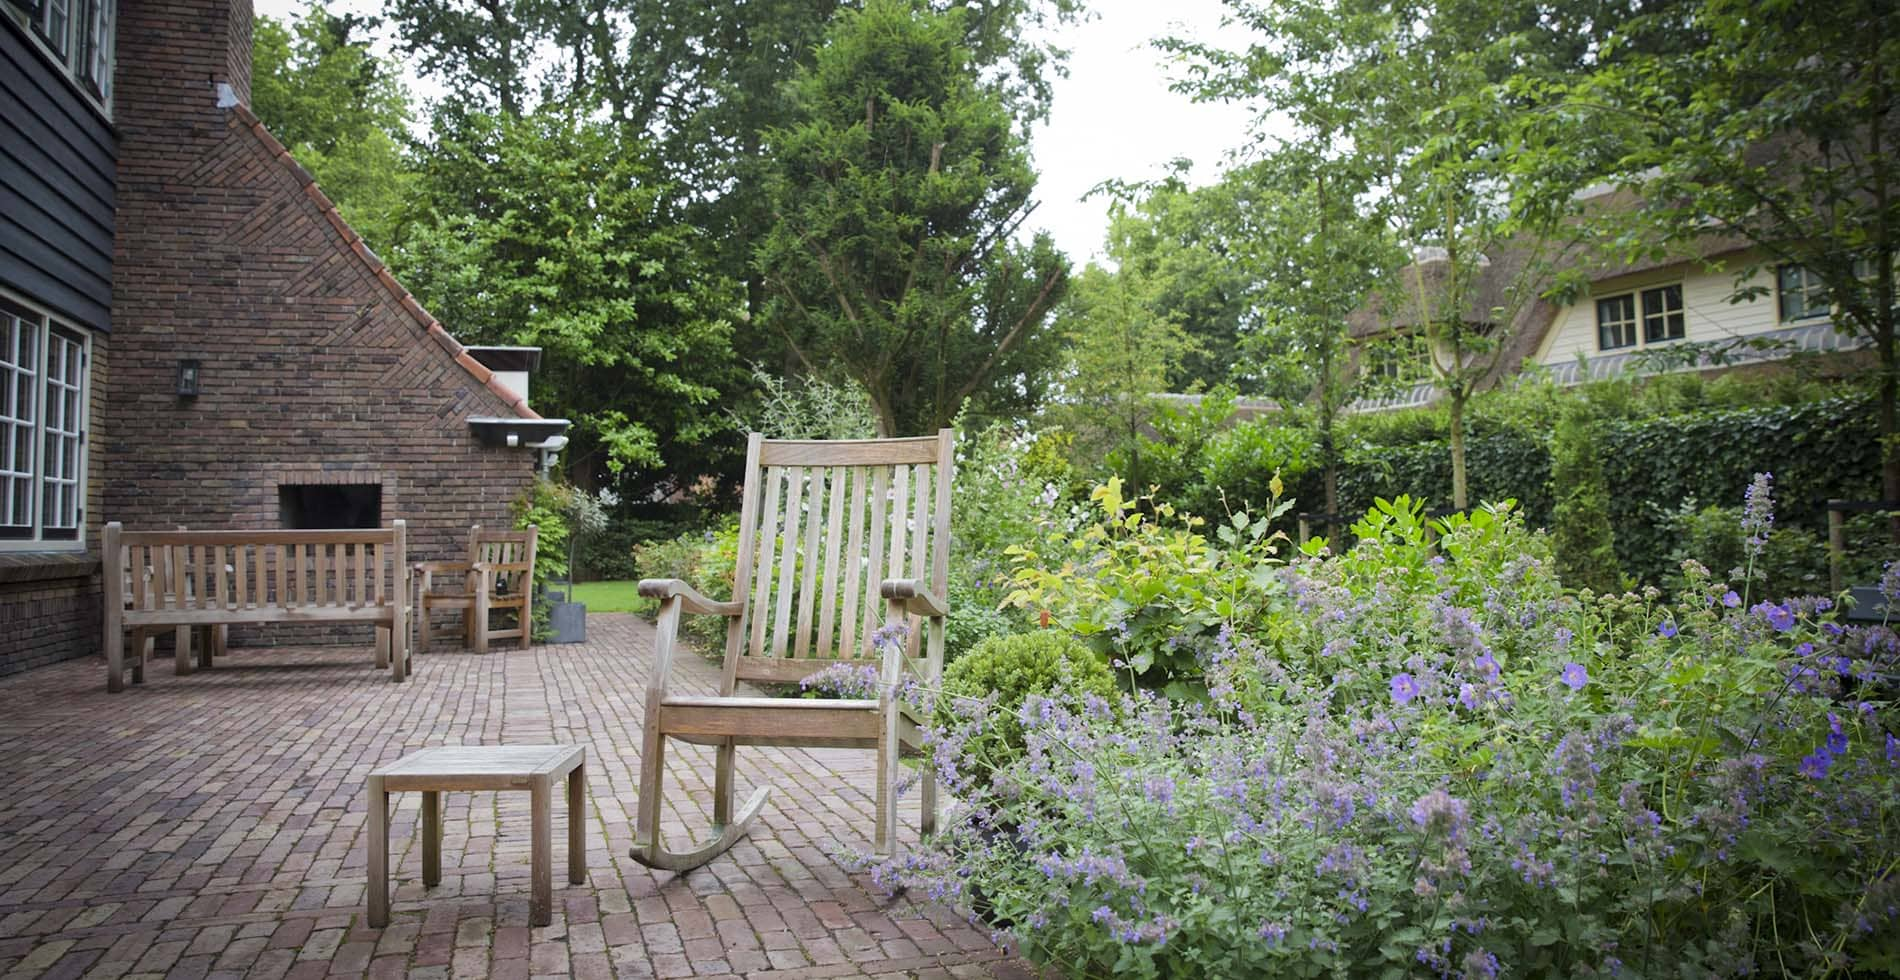 English Gardening In 't Gooi